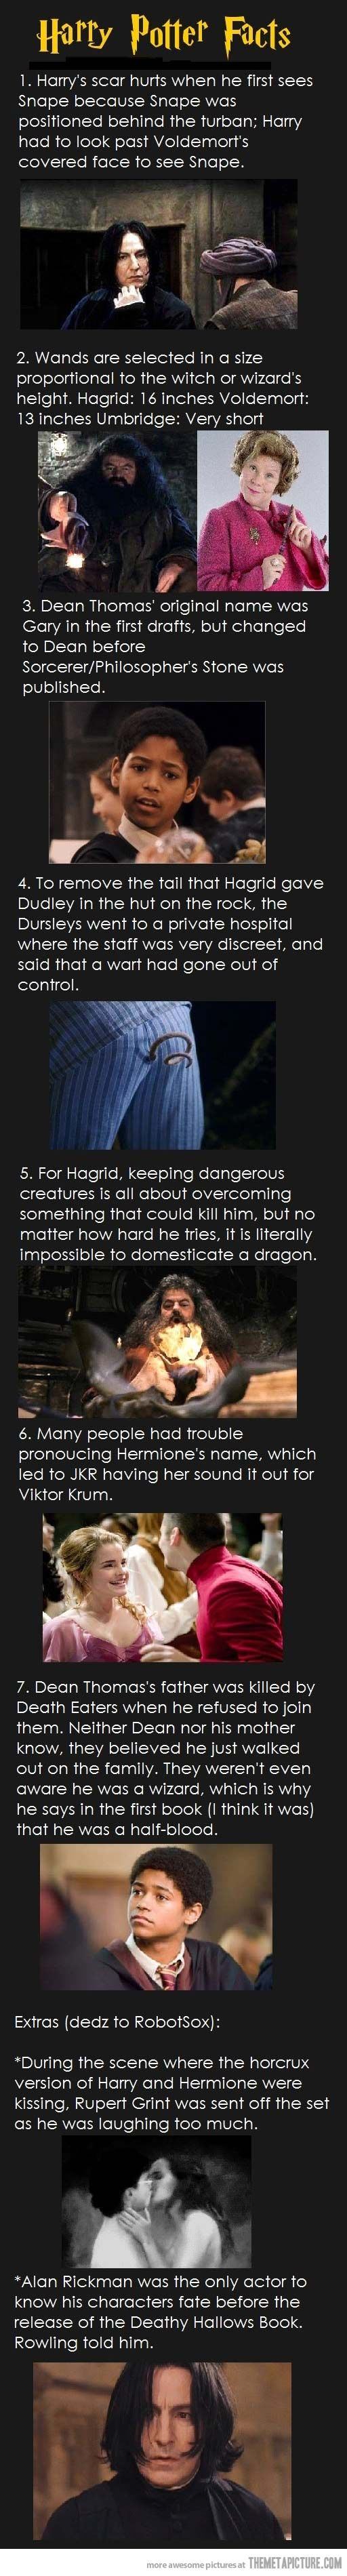 Facts you probably didn't know about Harry Potter…